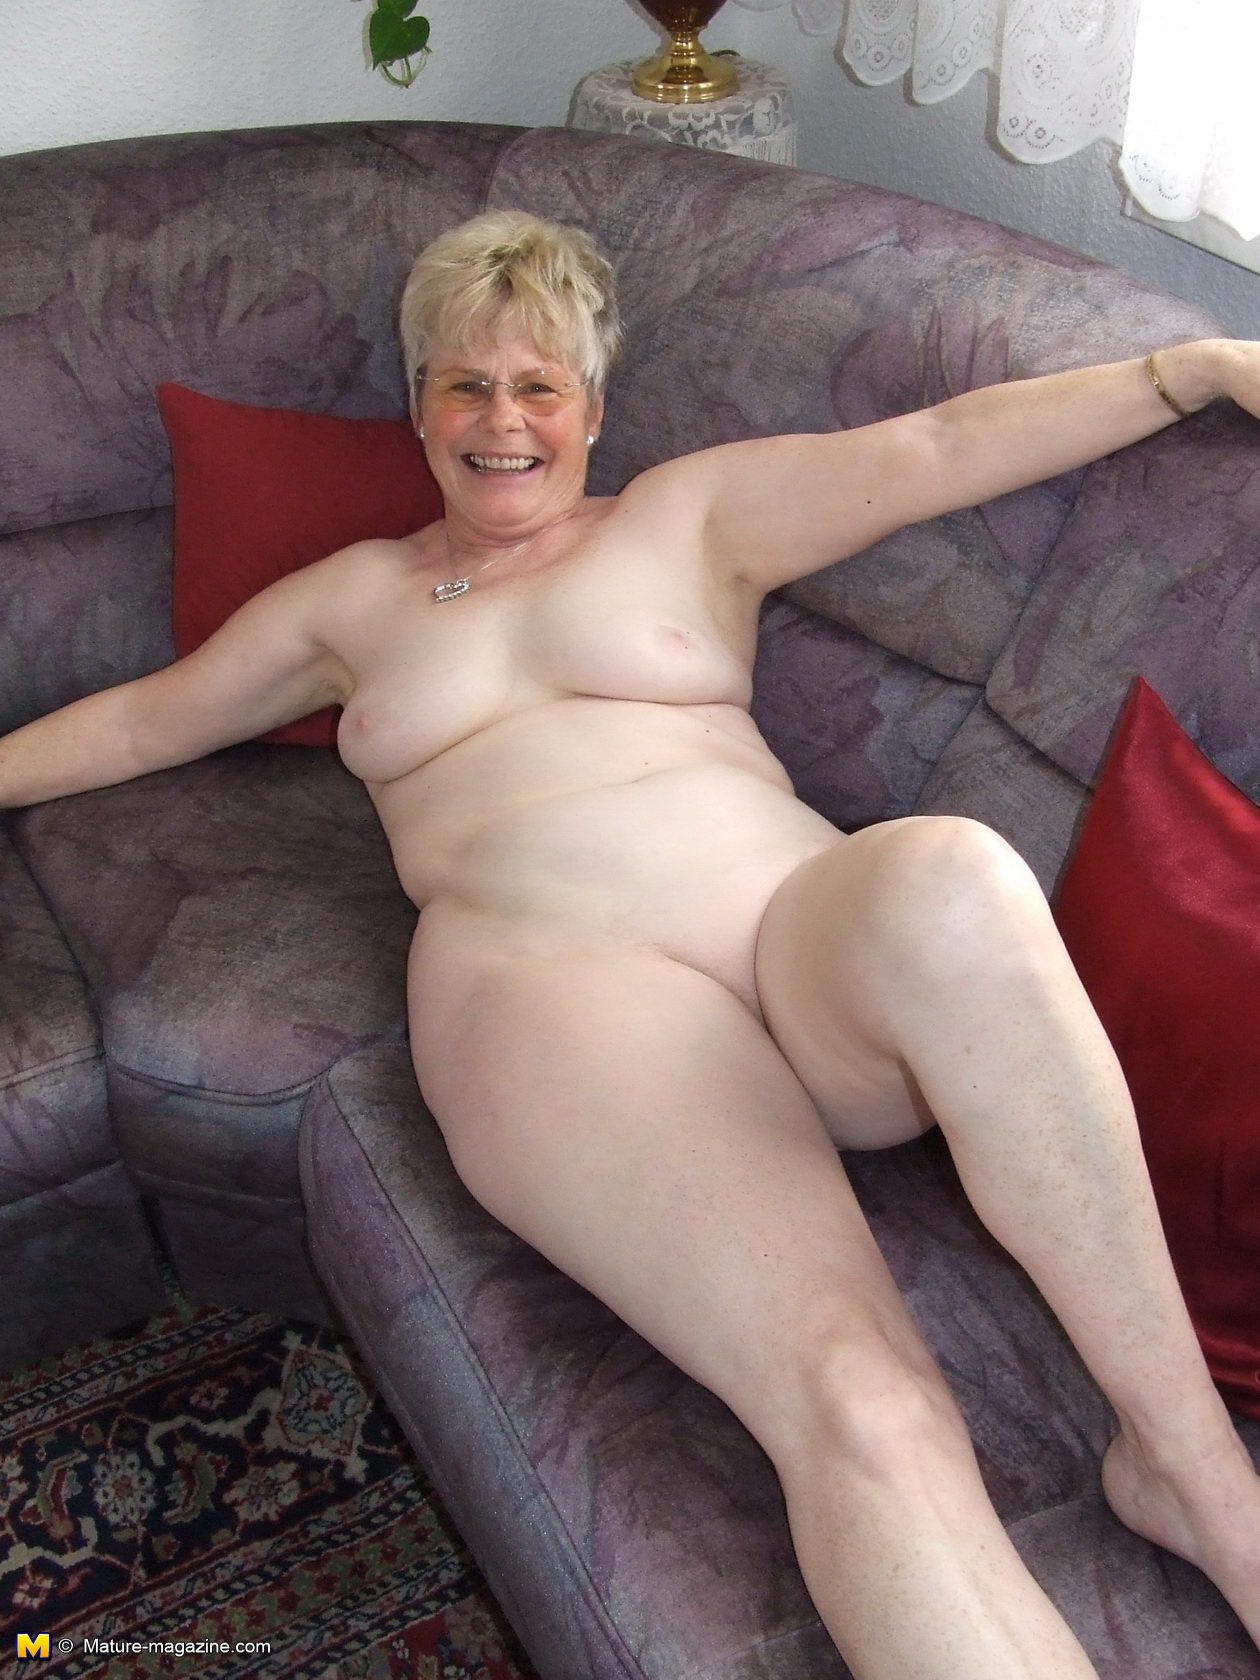 naughty older lady showing off her naked body - grannypornpics